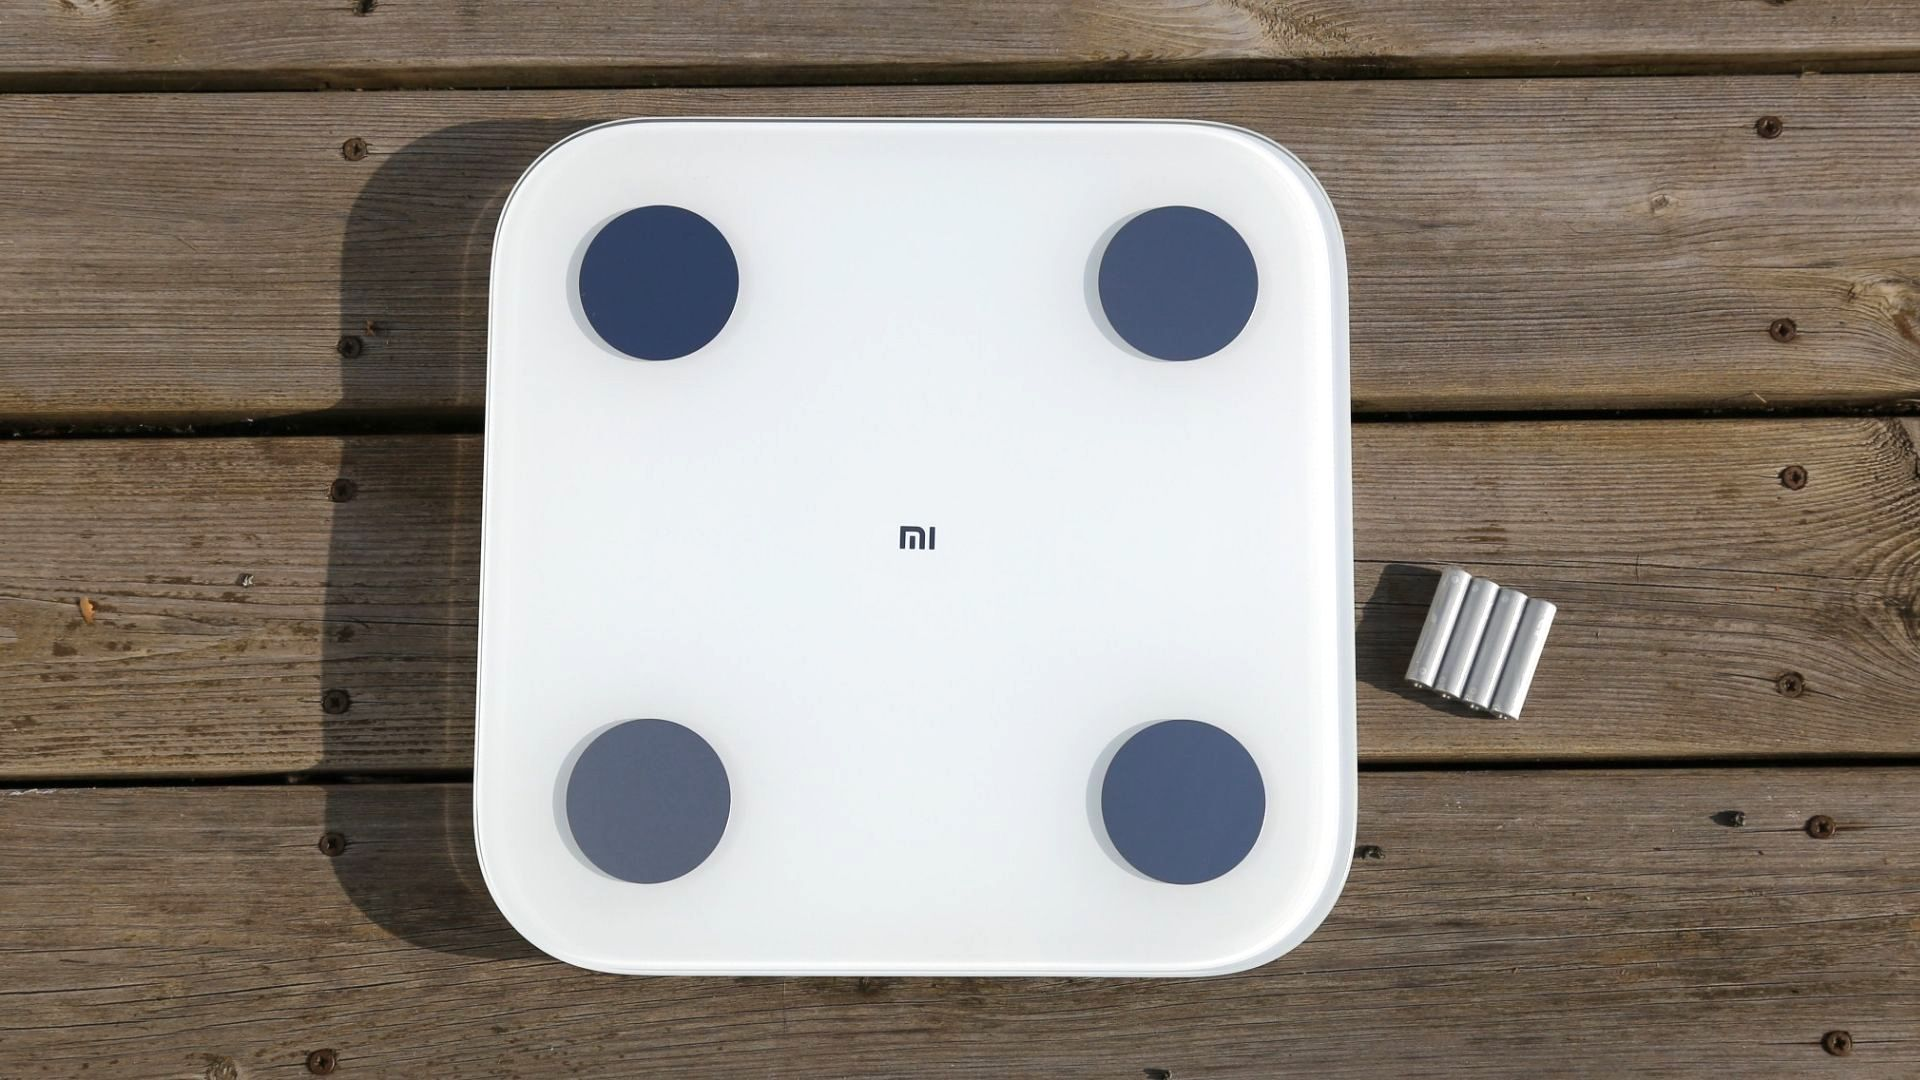 Top-down view of the Xiaomi Mi Body Composition Scale 2